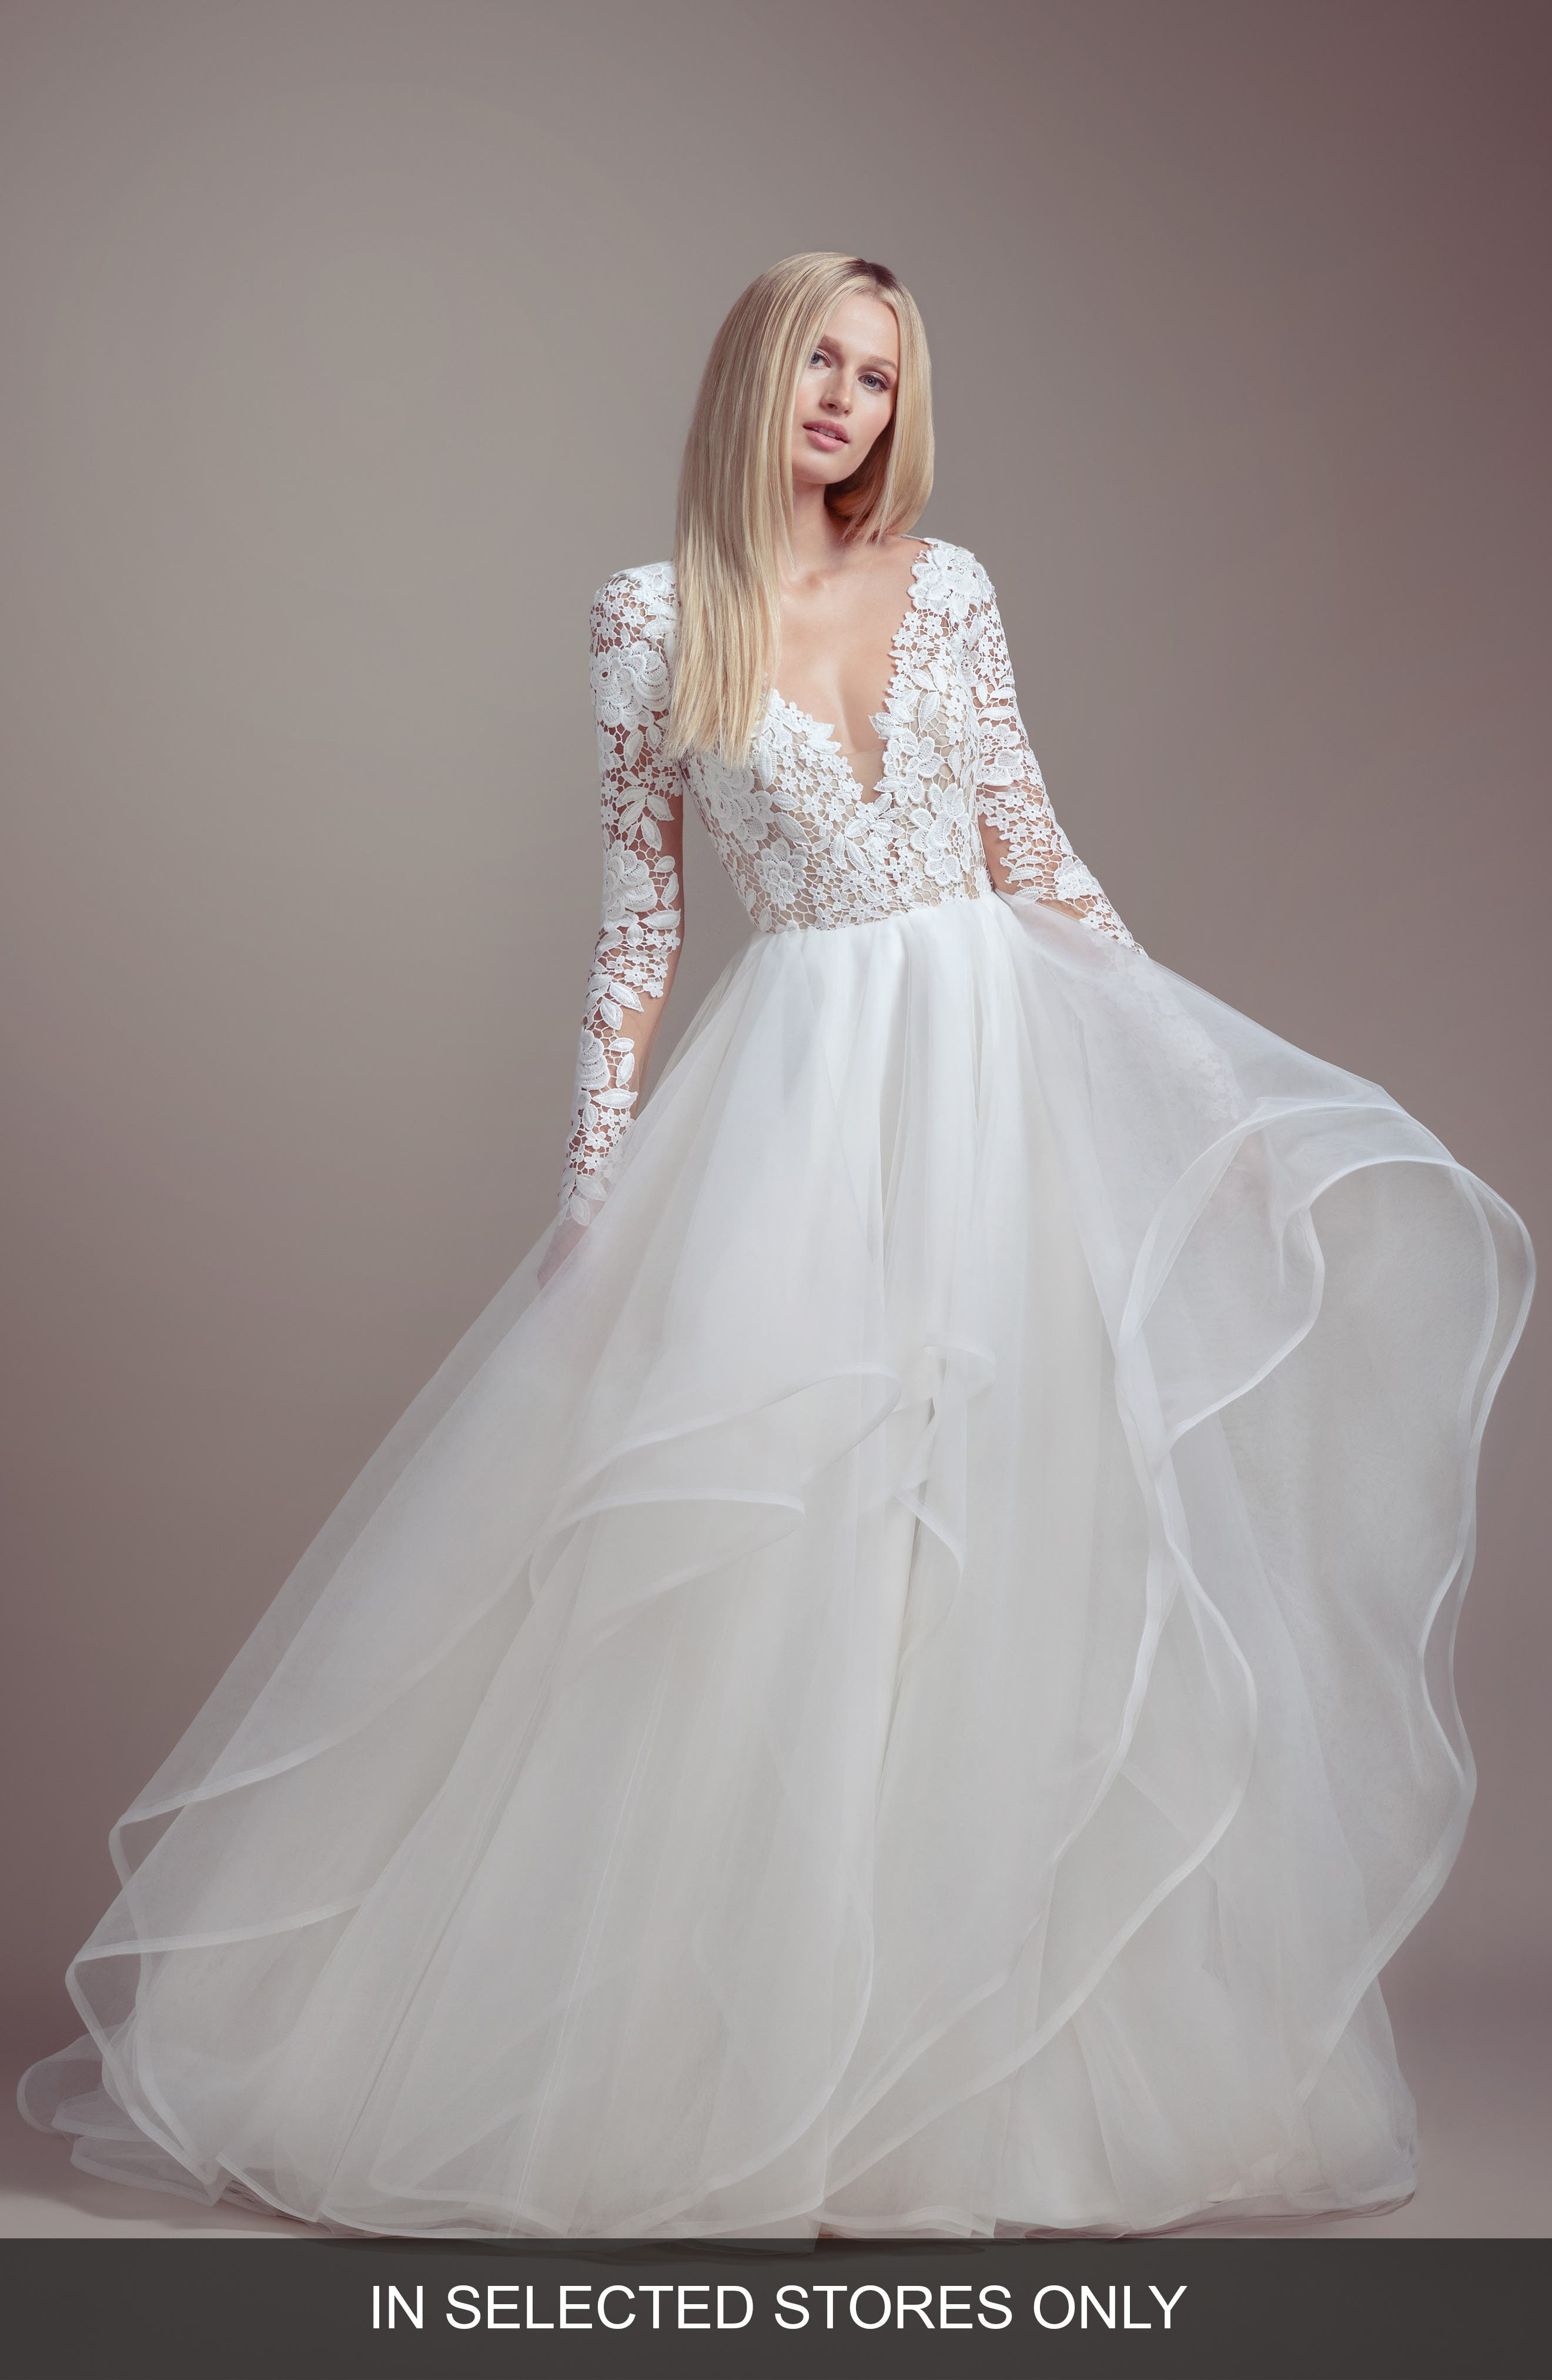 Blush By Hayley Paige Praise Long Sleeve Lace & Tulle Wedding Dress, Size IN STORE ONLY - Ivory